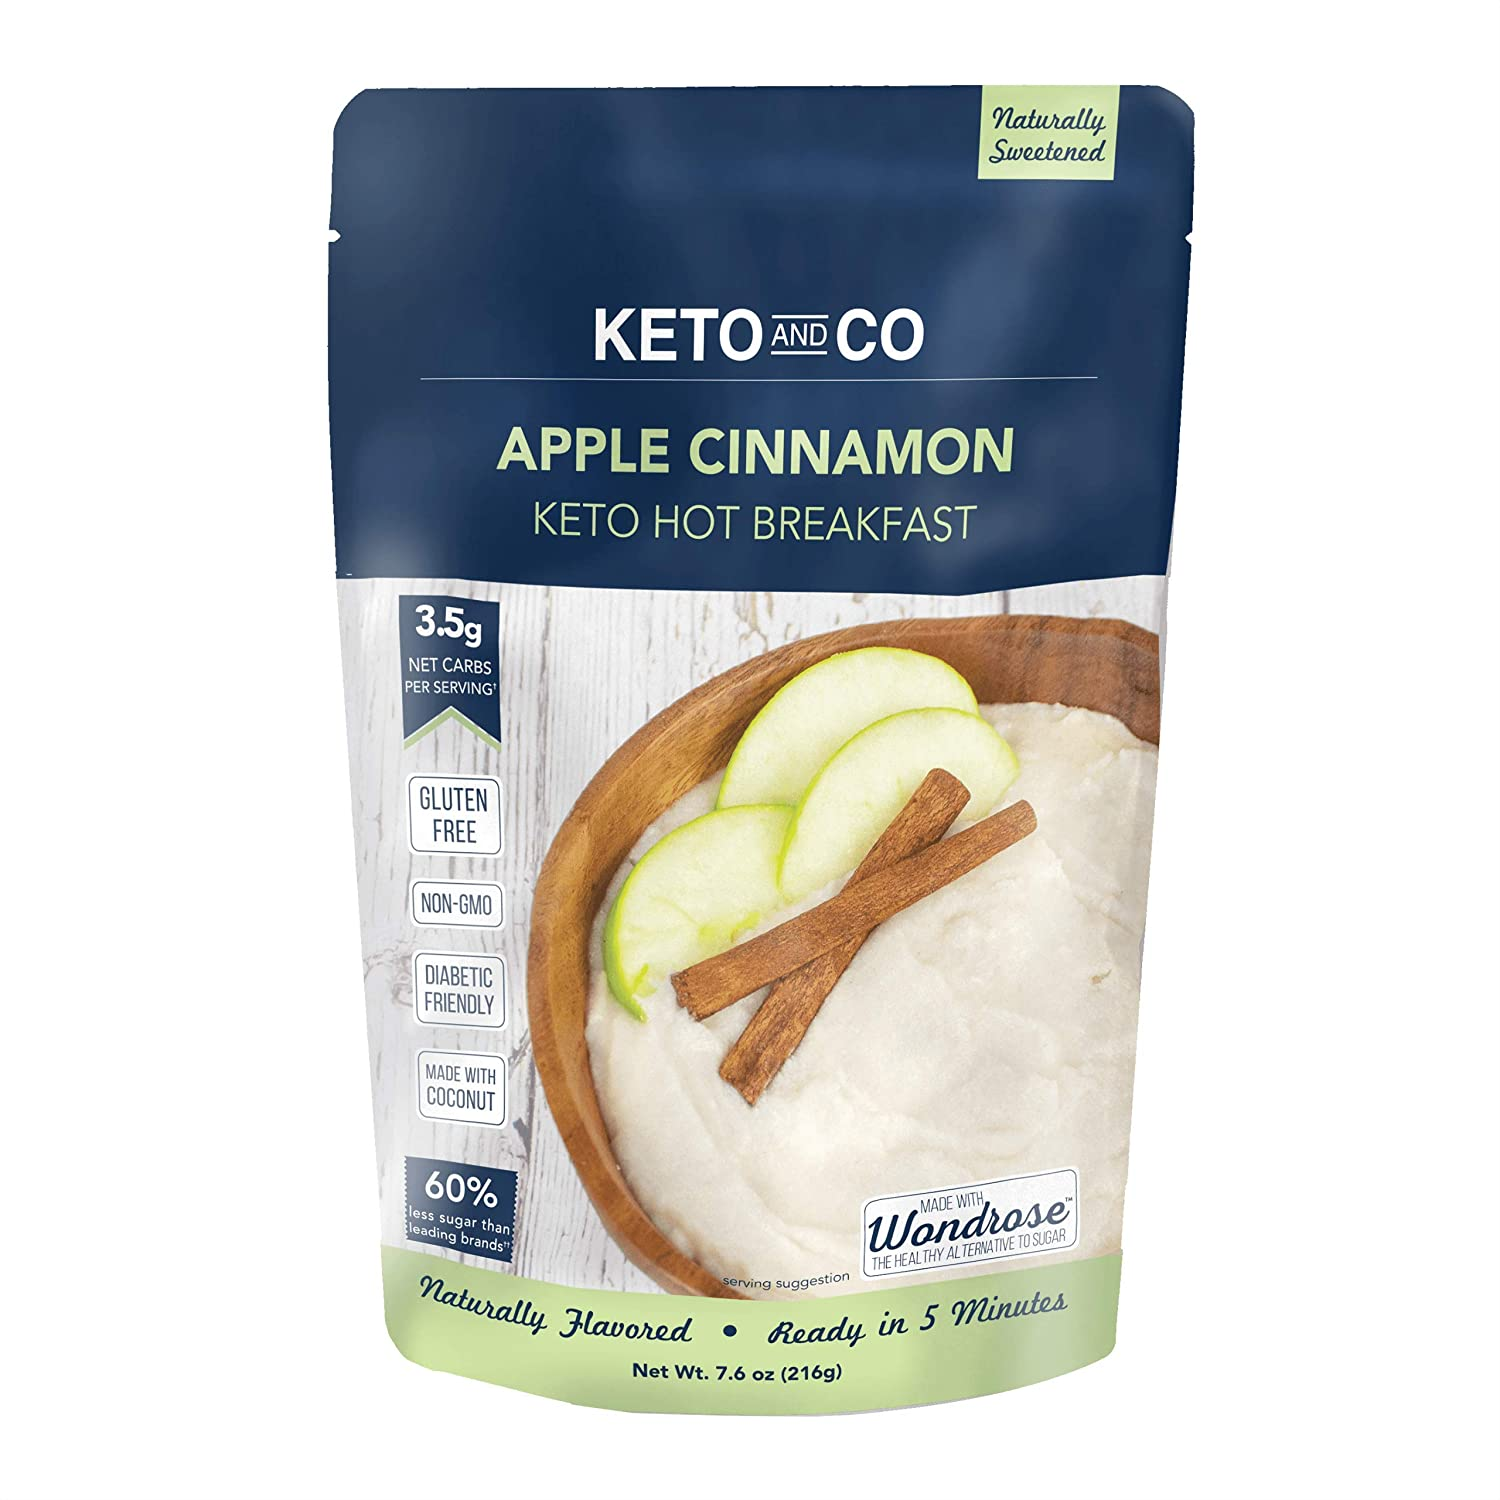 Keto Hot Breakfast by Keto and Co   Apple Cinnamon Flavor   Just 3.5 Net Carbs Per Serving   Gluten Free, Low Carb, No Added Sugar, Naturally Sweetened   (8 Servings - Apple Cinnamon)